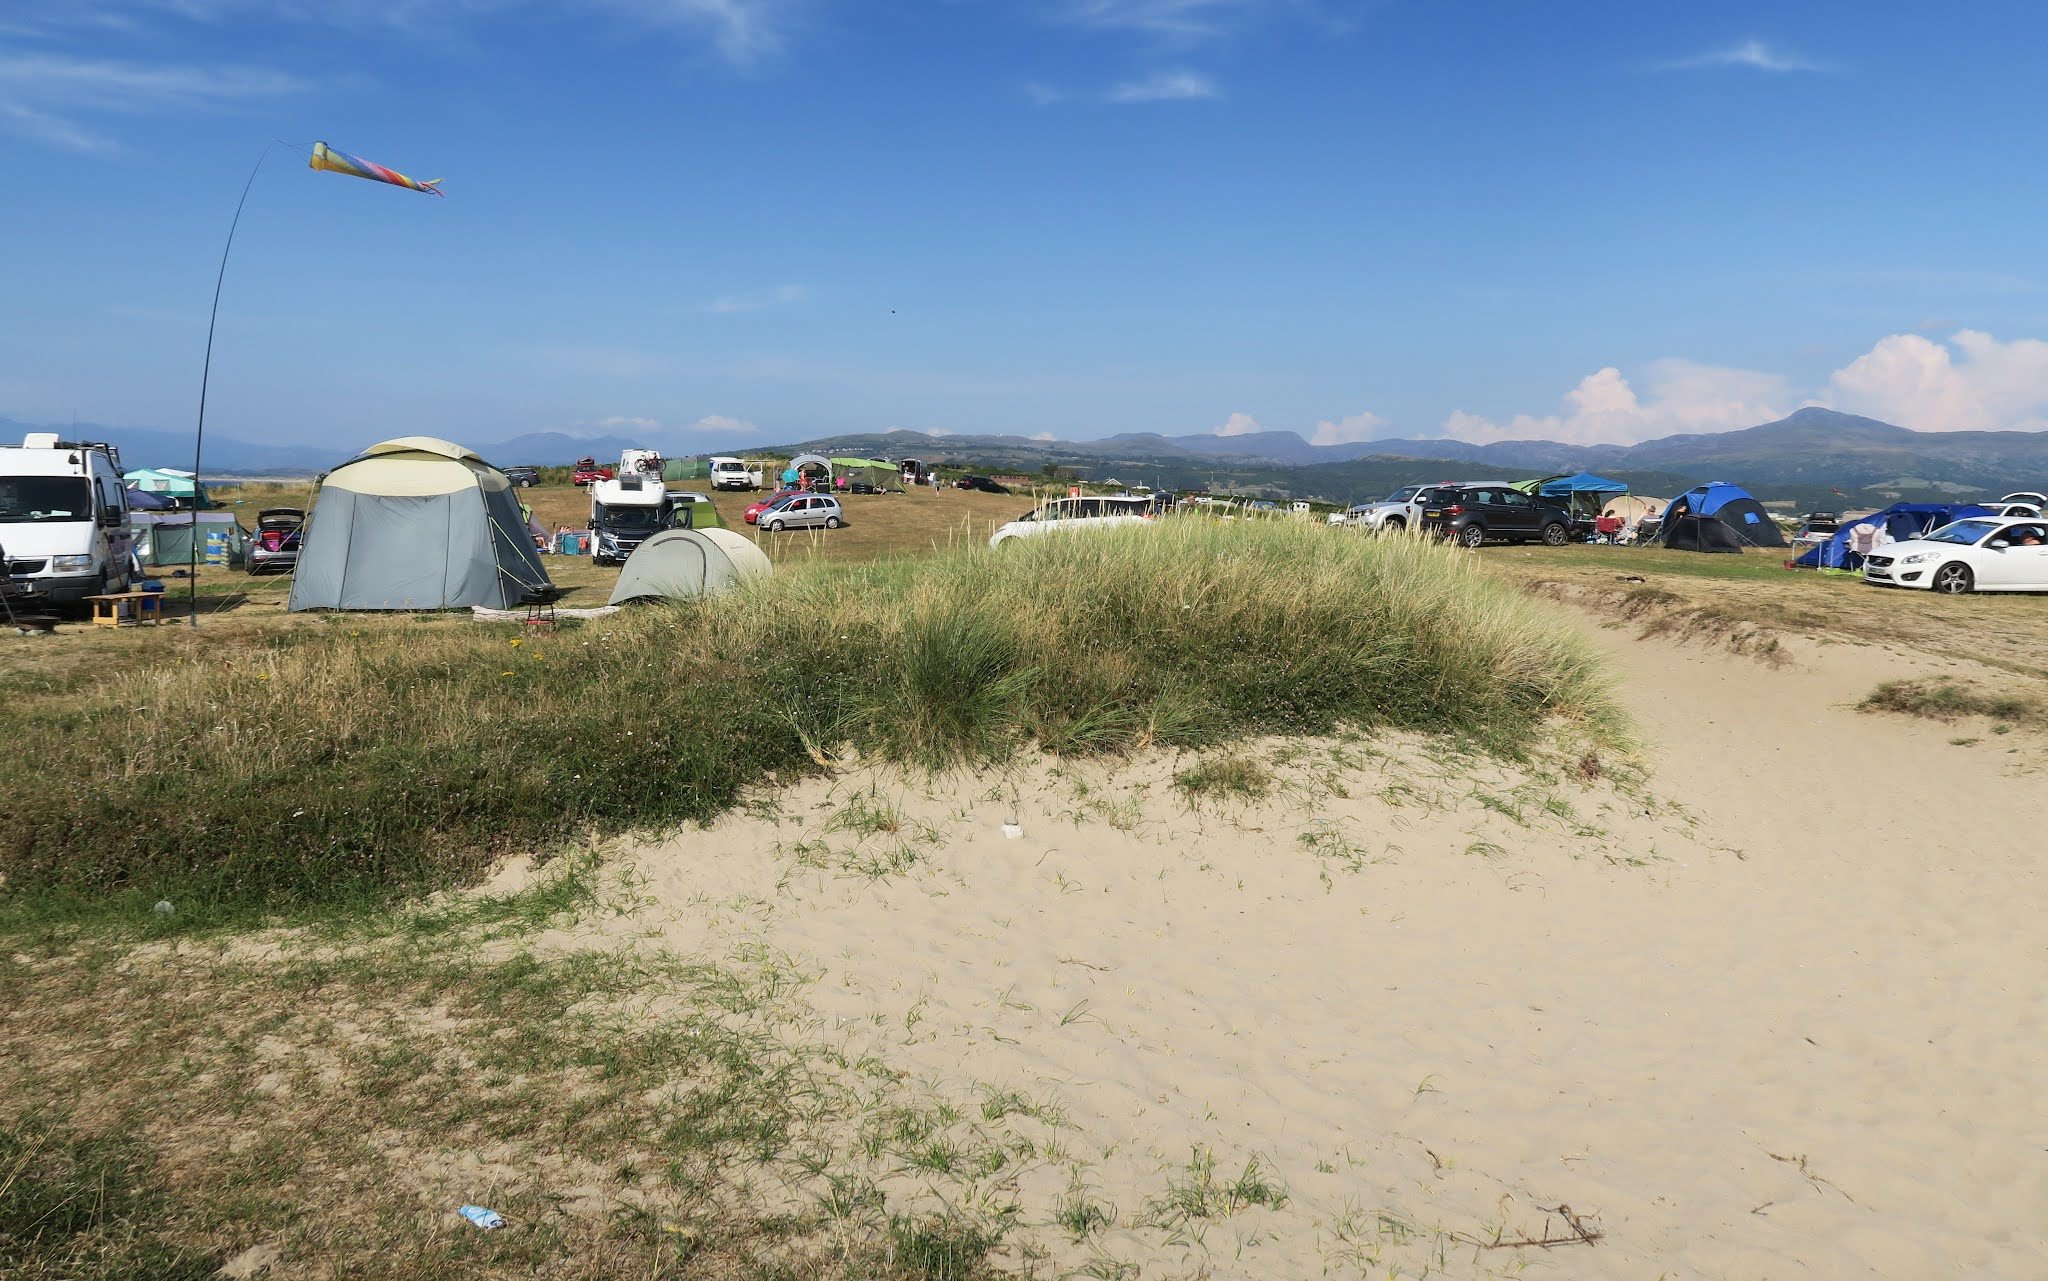 Standing on a sandy path looking towards the campsite. Tents and campervans can be seen across the landscape.